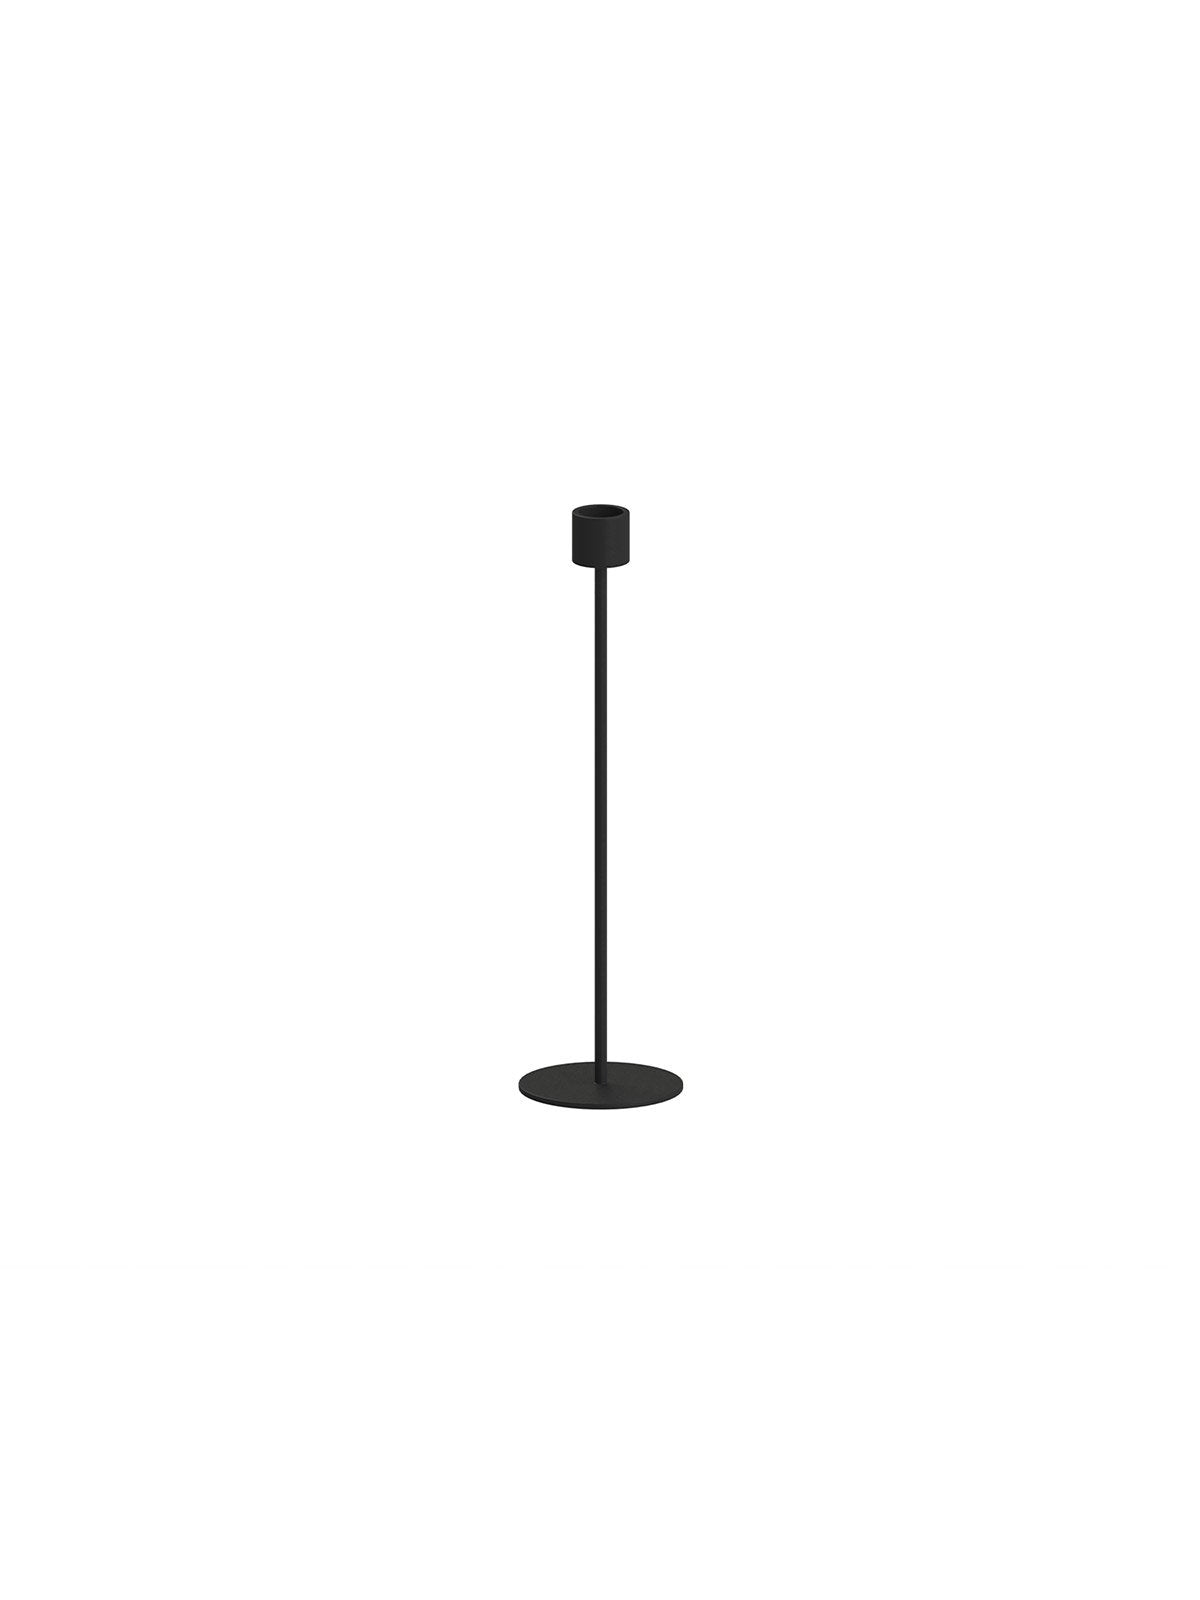 candlestick_large_black_product1_miljuu.com_1304-016